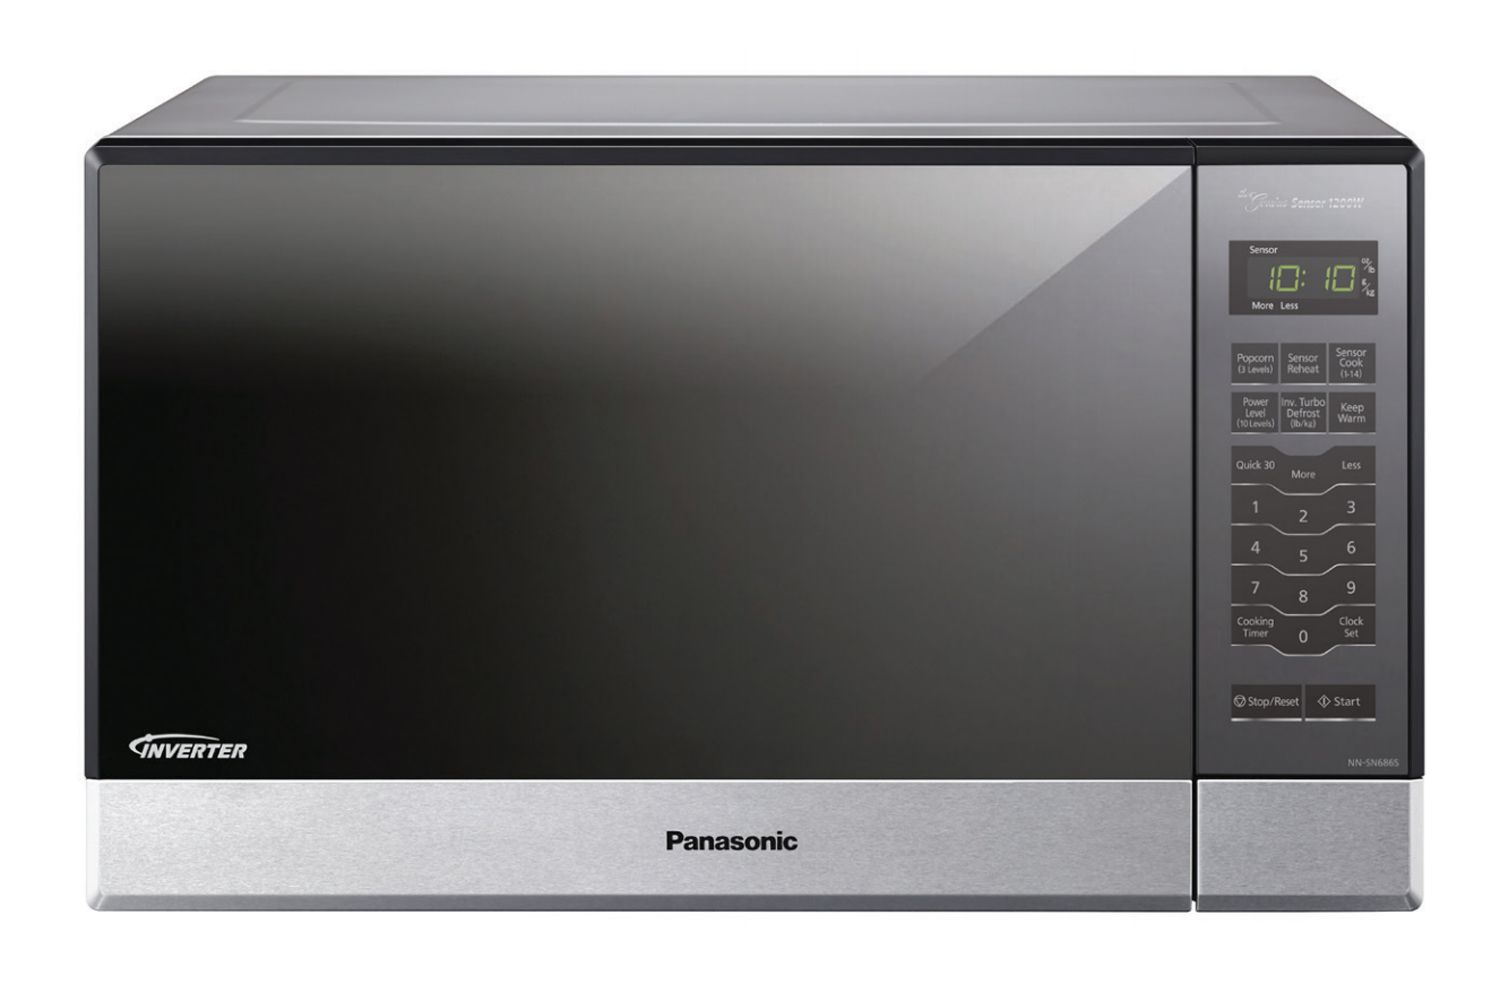 Smaller 169 Abt Has Special Shipping On The Panasonic Stainless